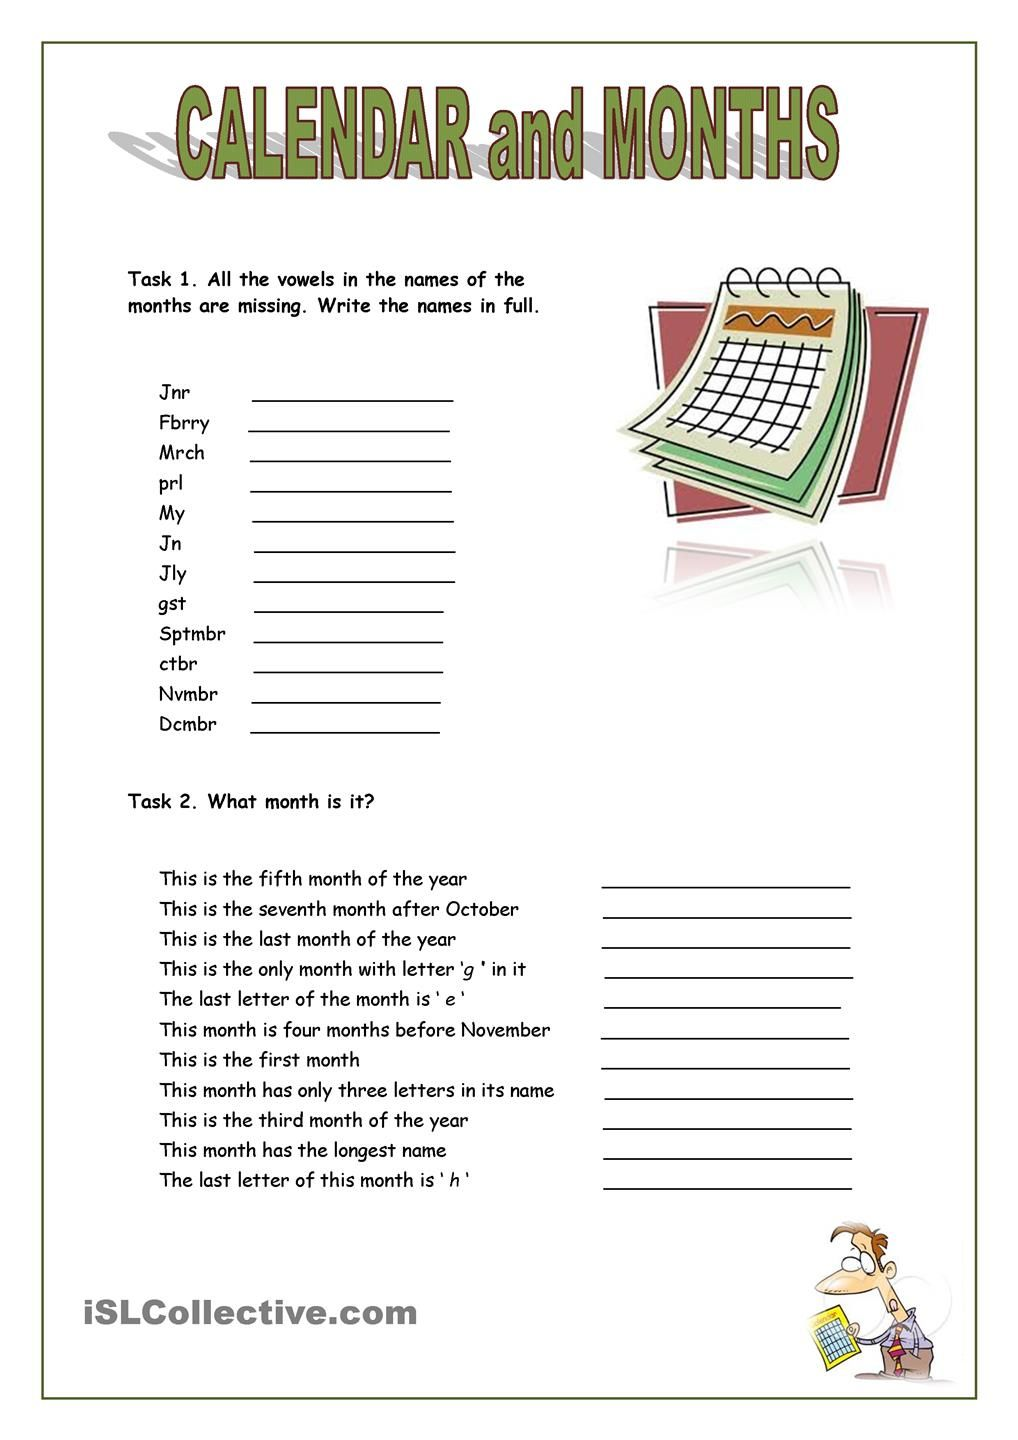 calendar and months | Teaching tools and ideas | Pinterest ...